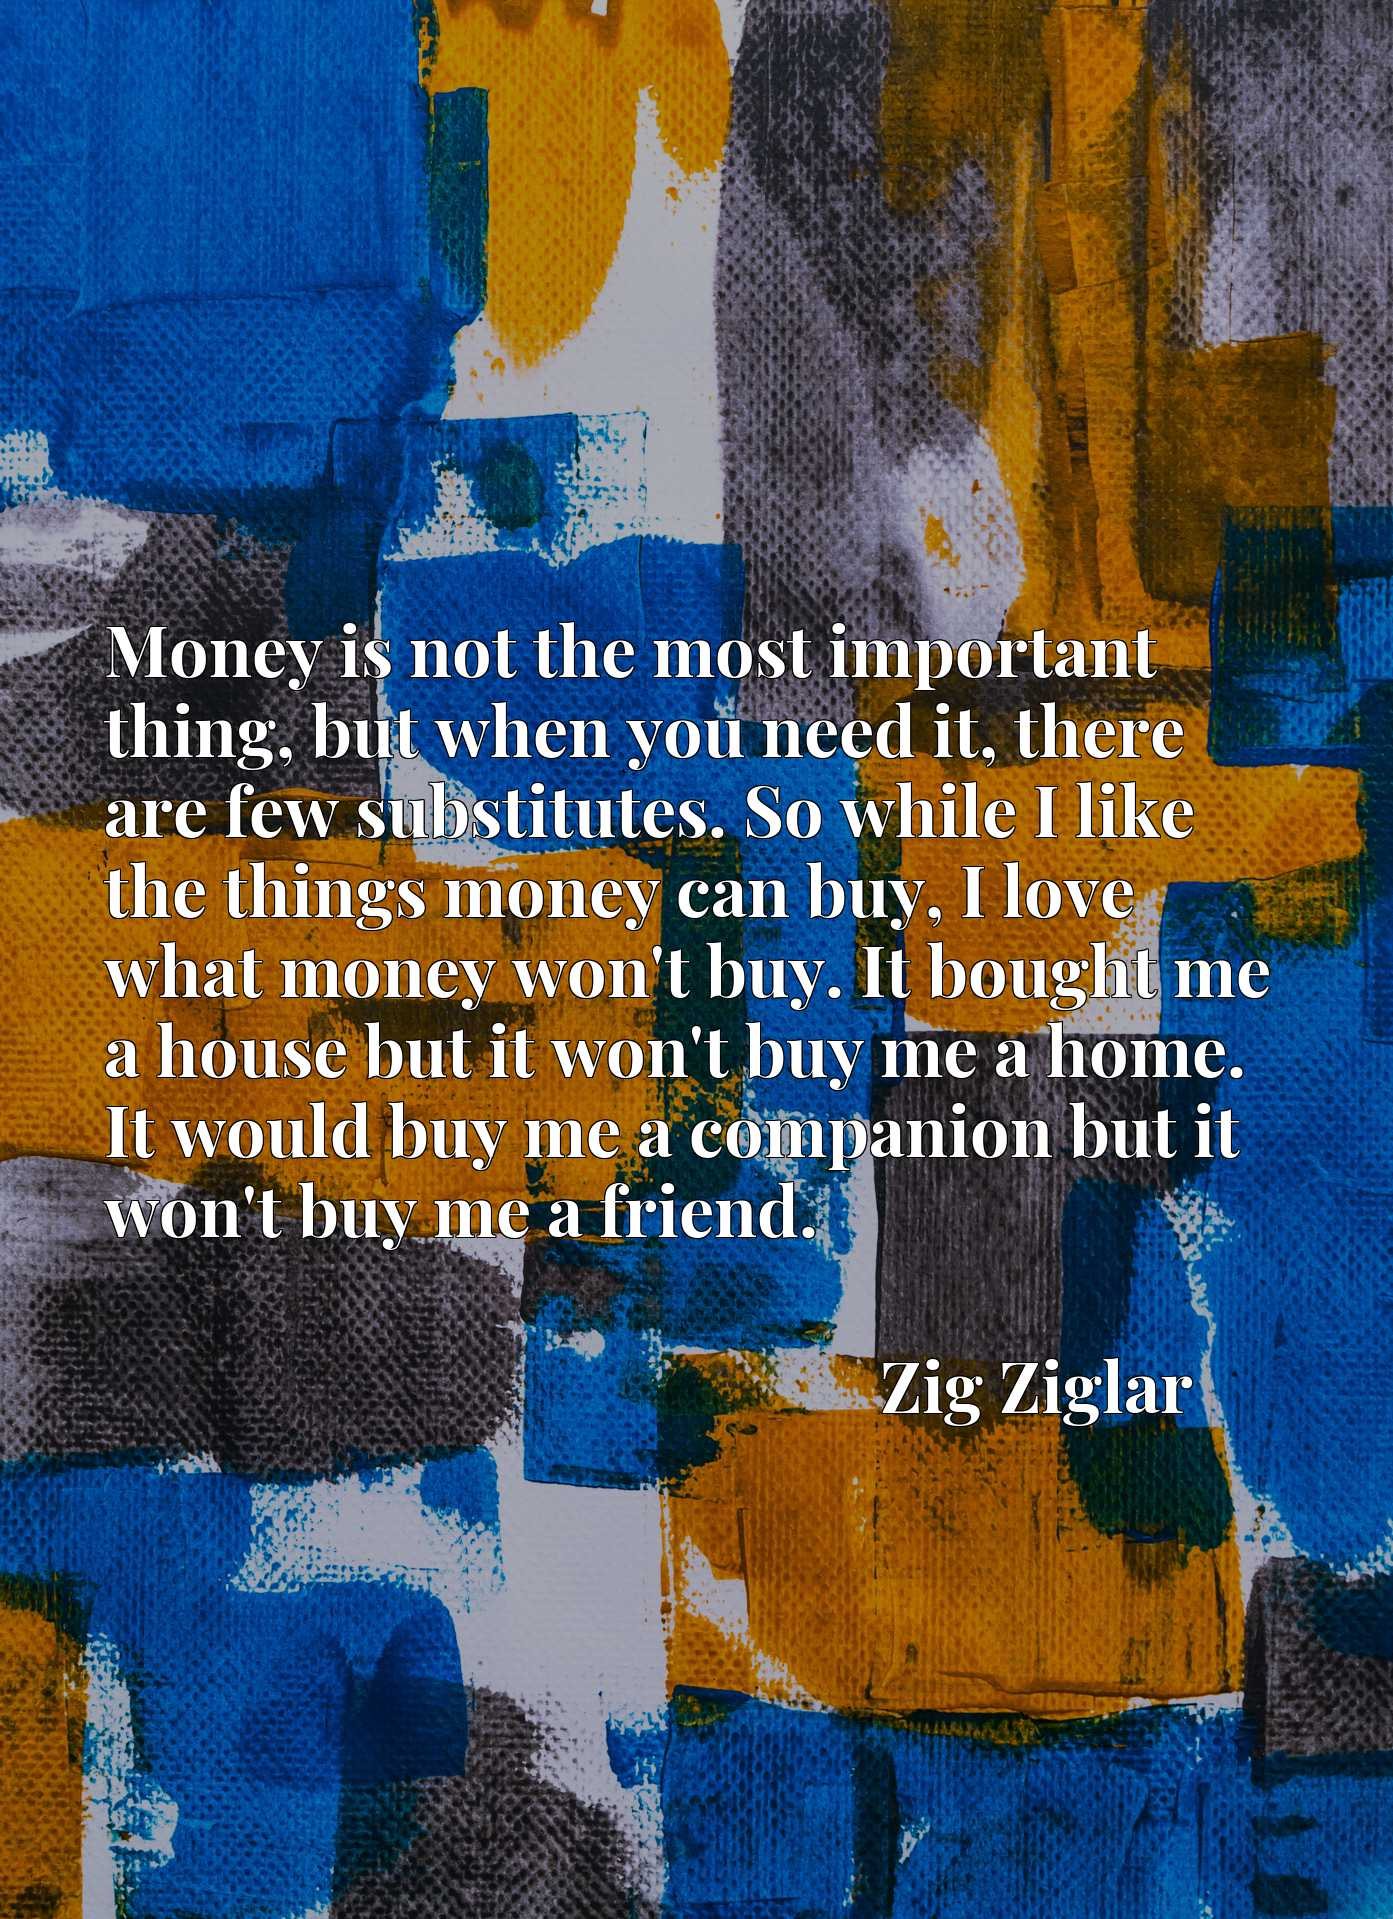 Money is not the most important thing, but when you need it, there are few substitutes. So while I like the things money can buy, I love what money won't buy. It bought me a house but it won't buy me a home. It would buy me a companion but it won't buy me a friend.